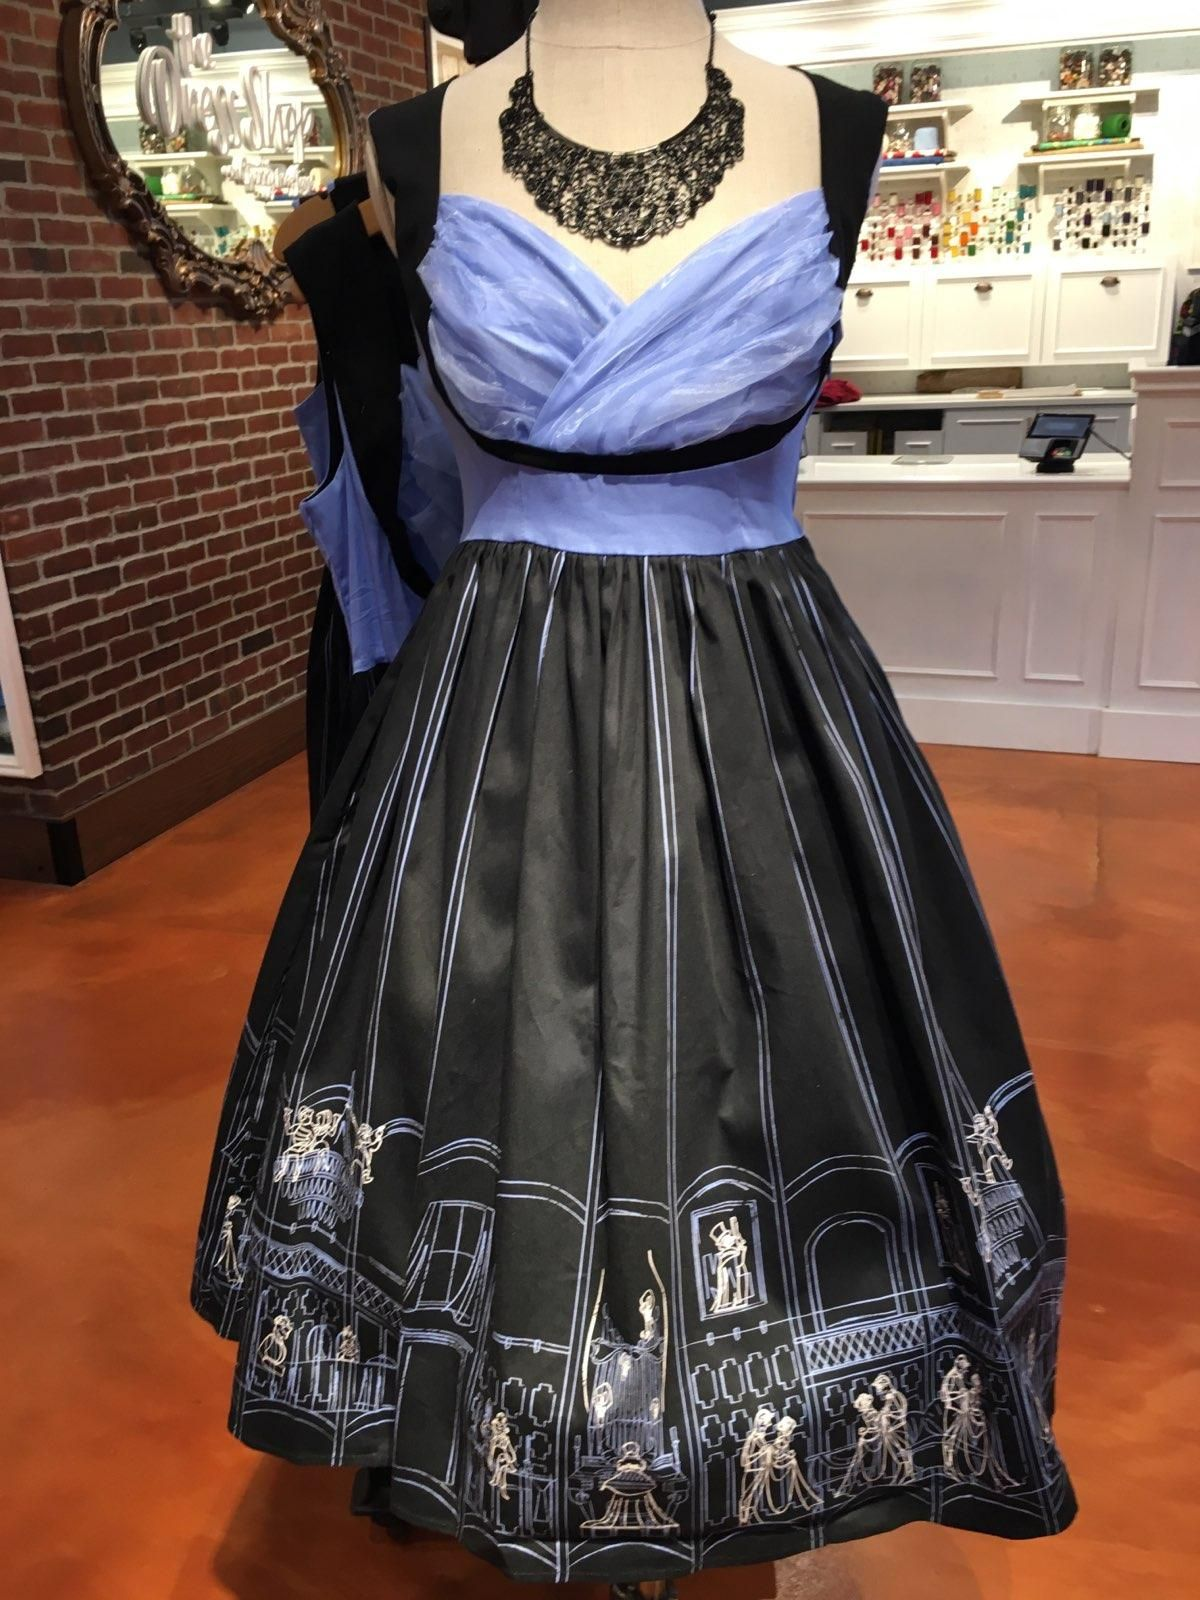 new her universe haunted mansion dress at the dress shop